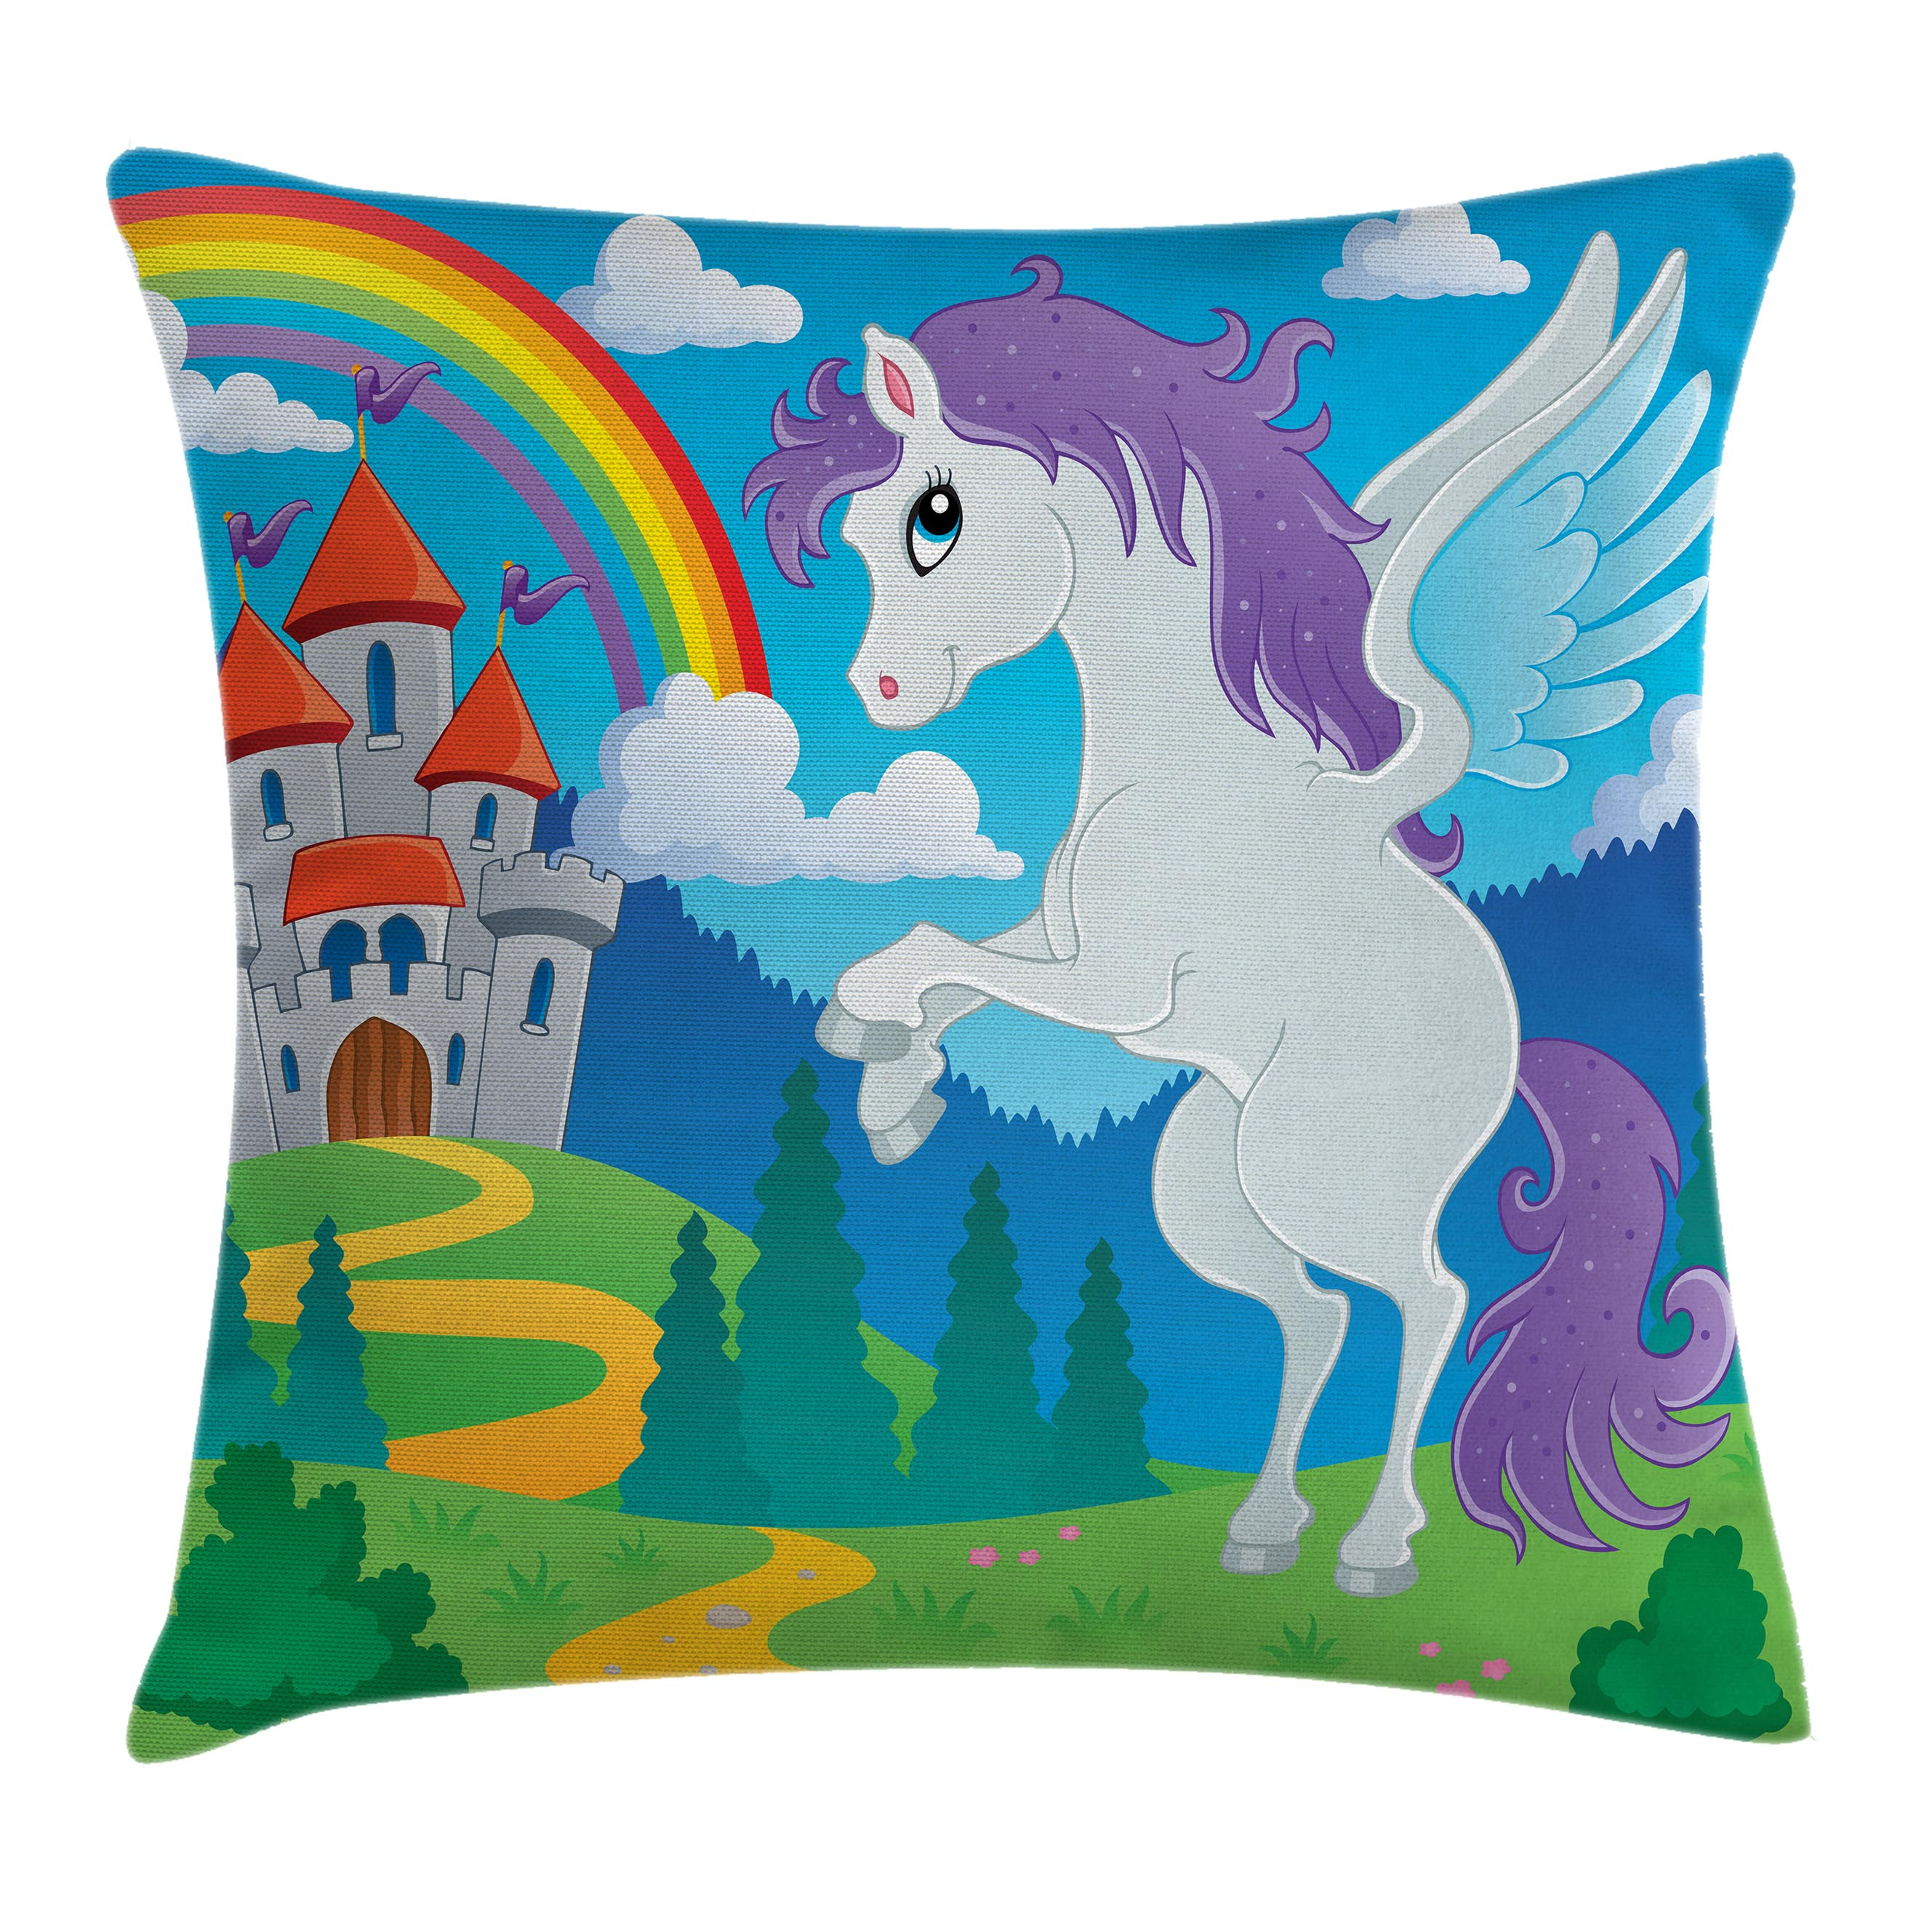 Kids Decor Throw Pillow Cushion Cover, Fantasy Myth Unicorn with Rainbow and Medieval Castle Fairy Tale Cartoon Design, Decorative Square Accent Pillow Case, 18 X 18 Inches, Multicolor, by Ambesonne